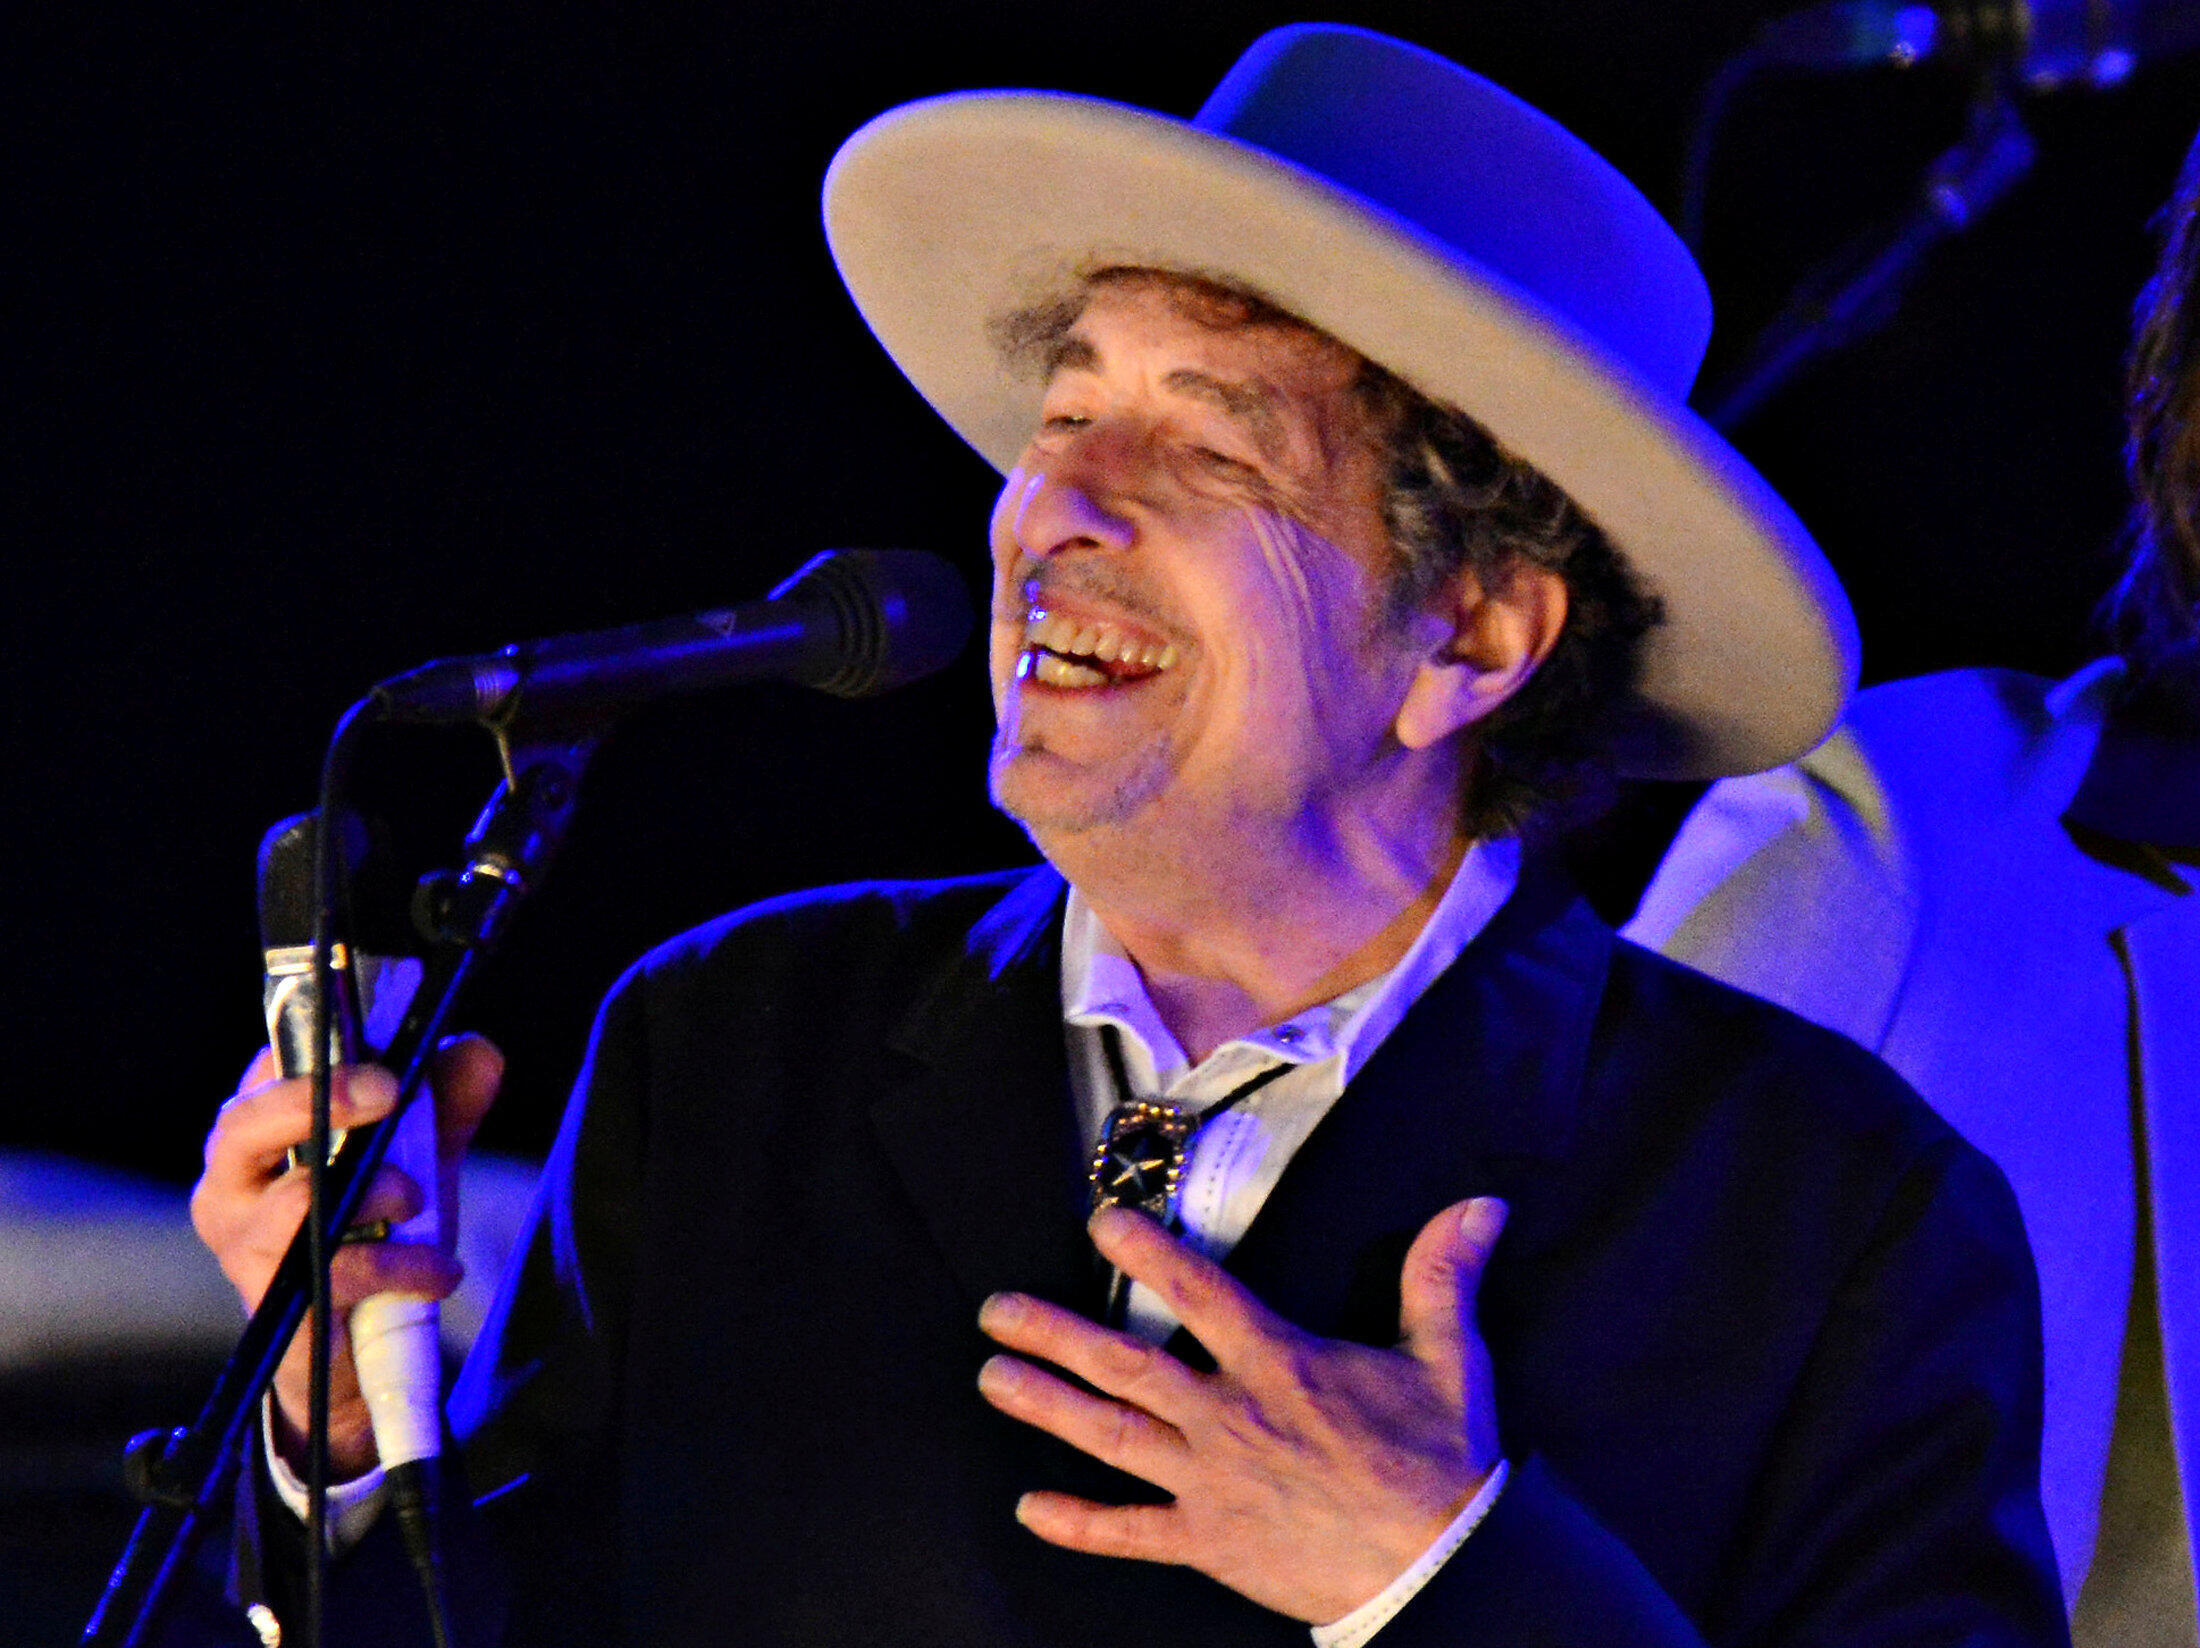 U.S. musician Bob Dylan performs during on day 2 of The Hop Festival in Paddock Wood, Kent, June 30, 2012. REUTERS/Ki Price/File Photo